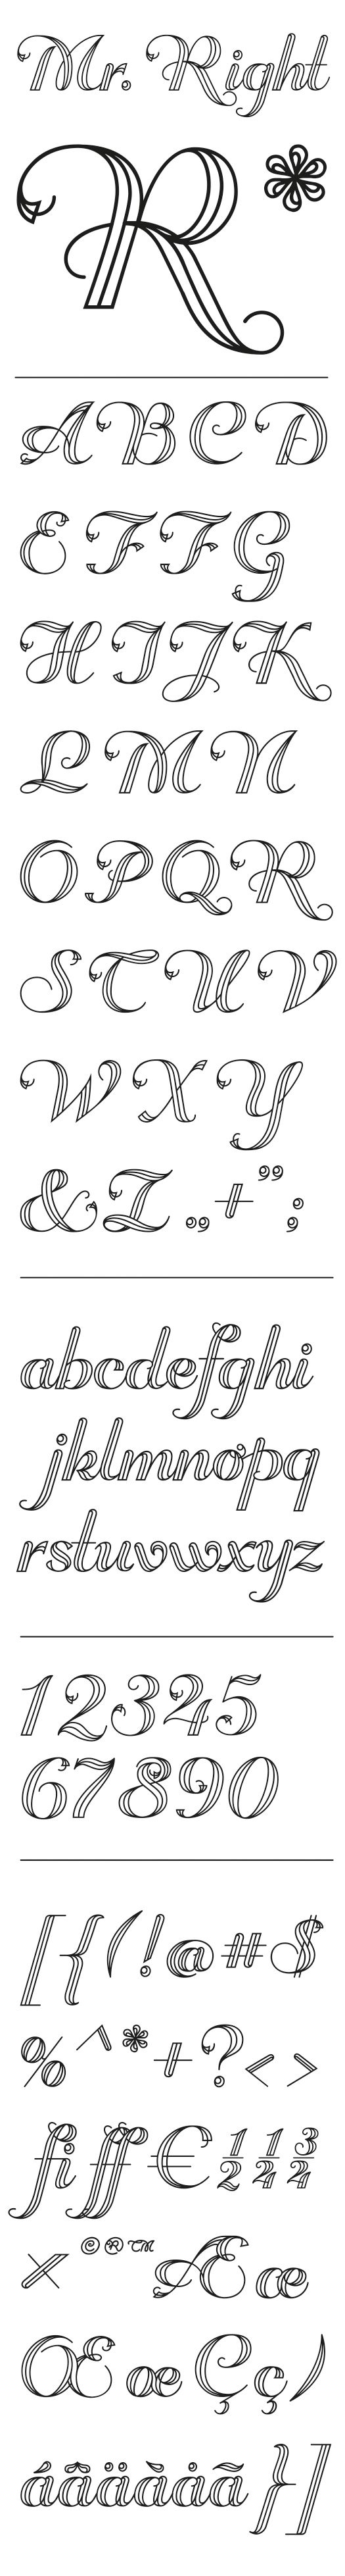 Simple Alphabet Letters That Can Be Drawn By Hand Journal Lettering Font Easy Great For Journaling Scrapbooking